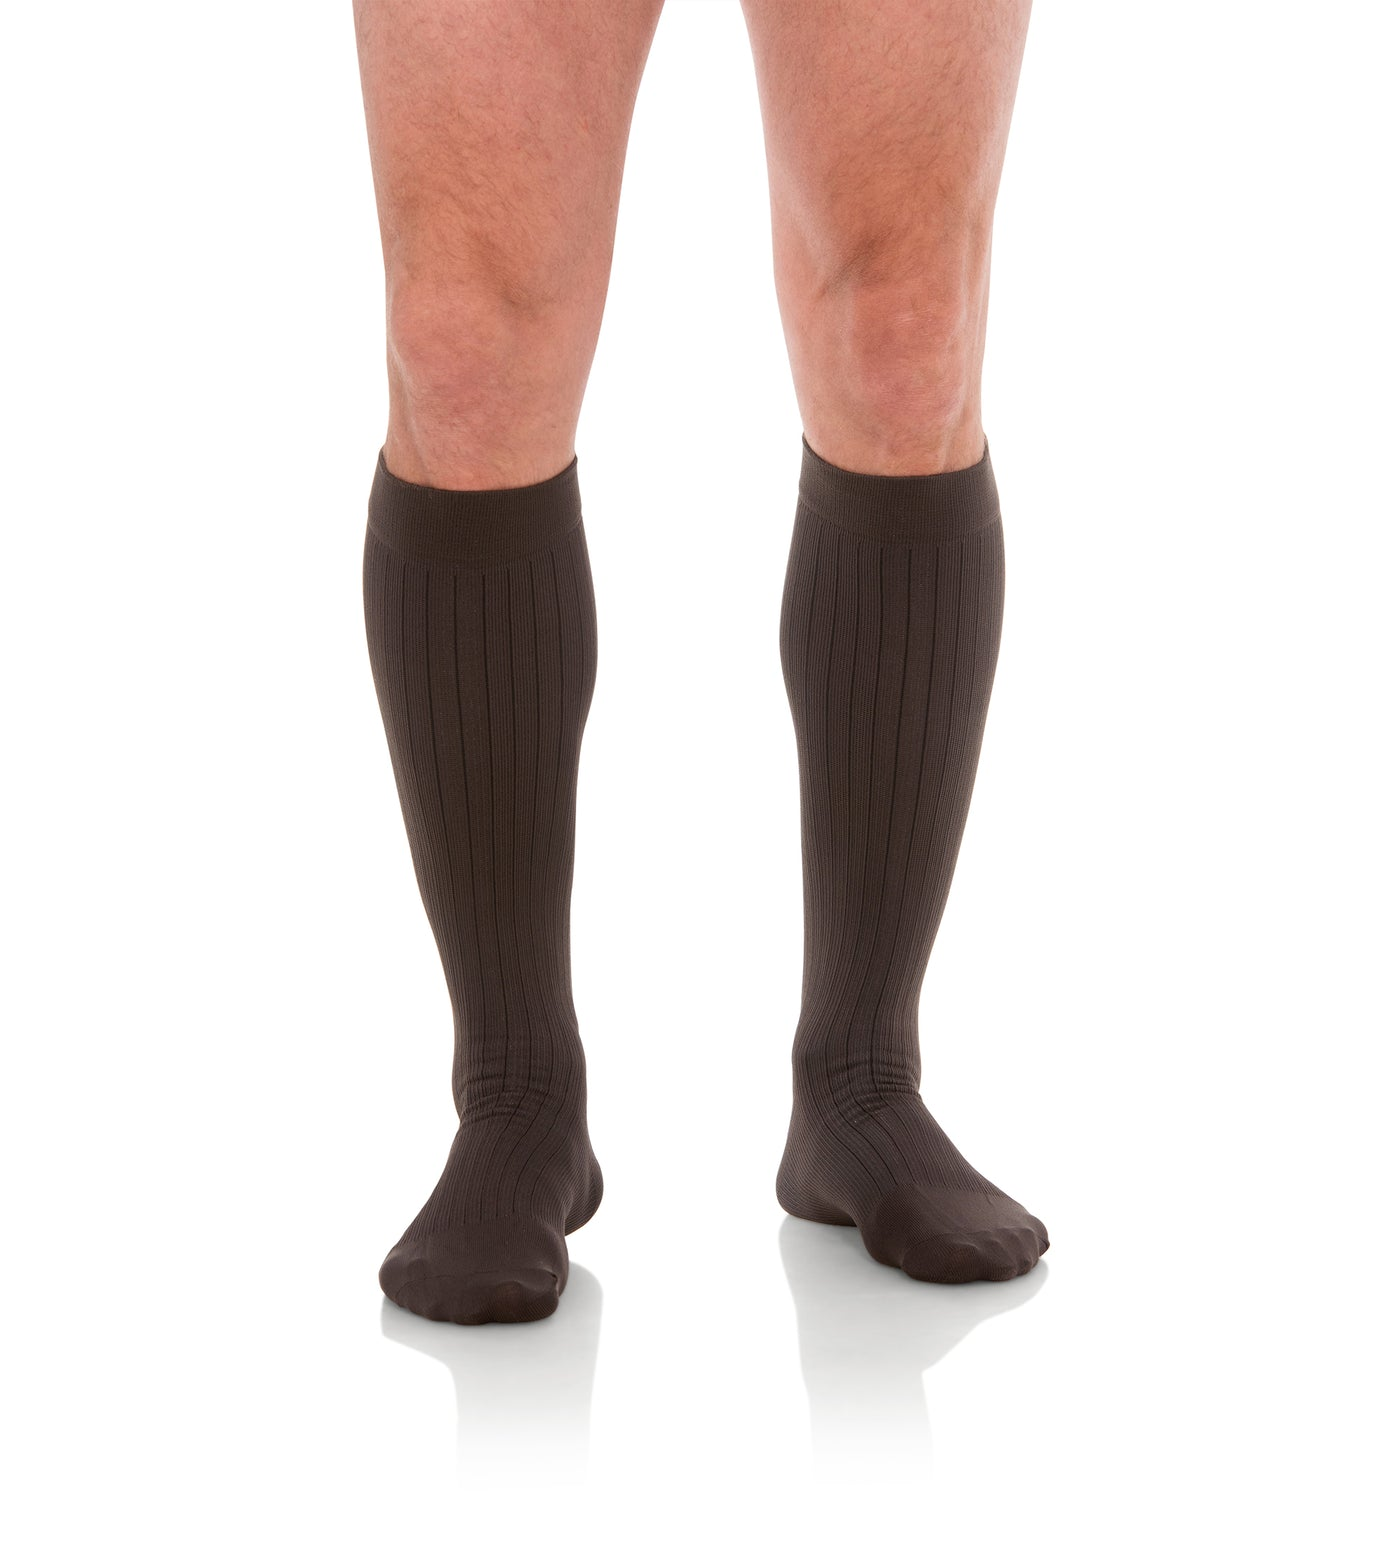 Mens Compression Socks and Stockings